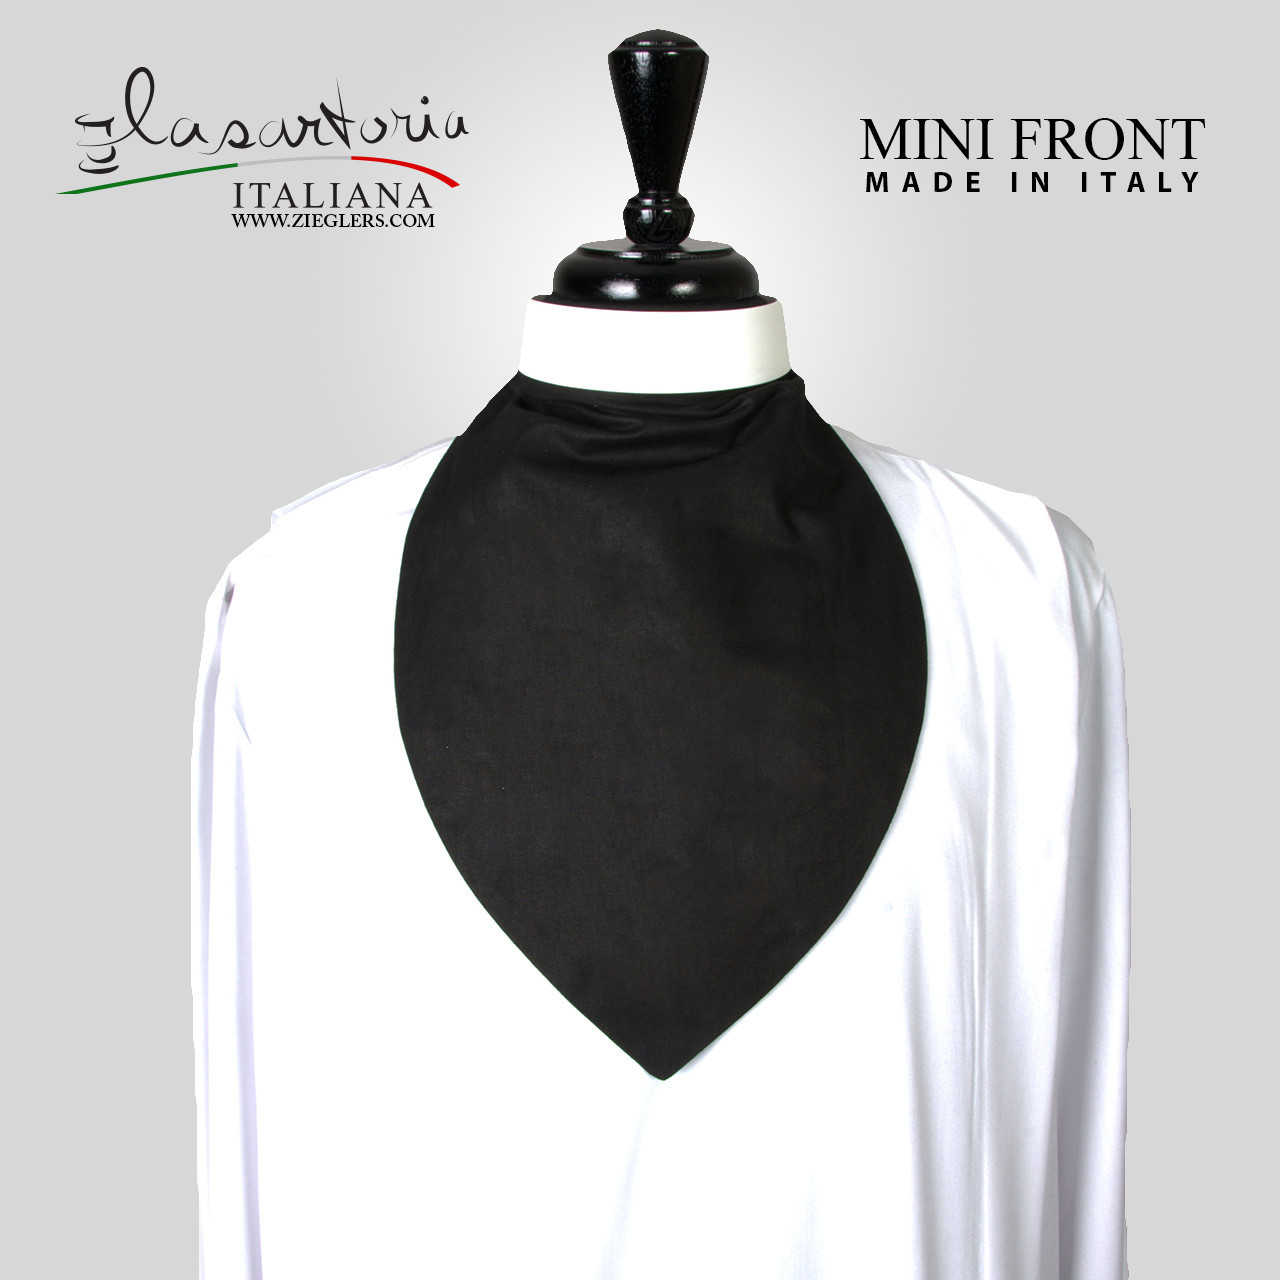 Clergy Mini Shirt Front Rabat Cotton Blend Made In Italy